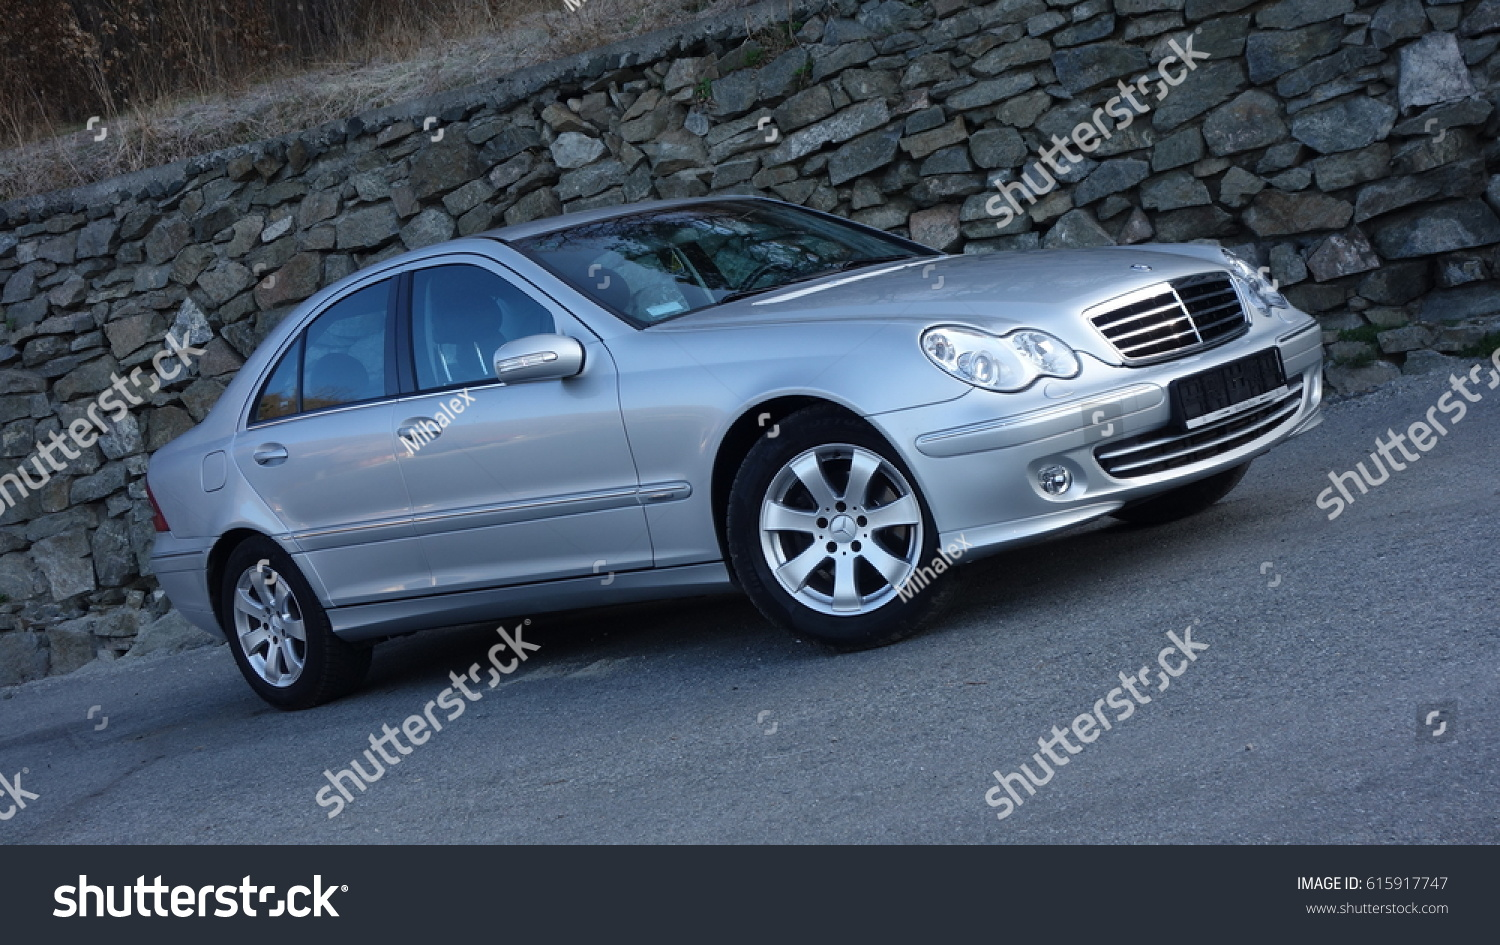 Cluj Napoca Romania March 31 2017 Mercedes Benz Stock Photo Edit Paint W203 Year 2005